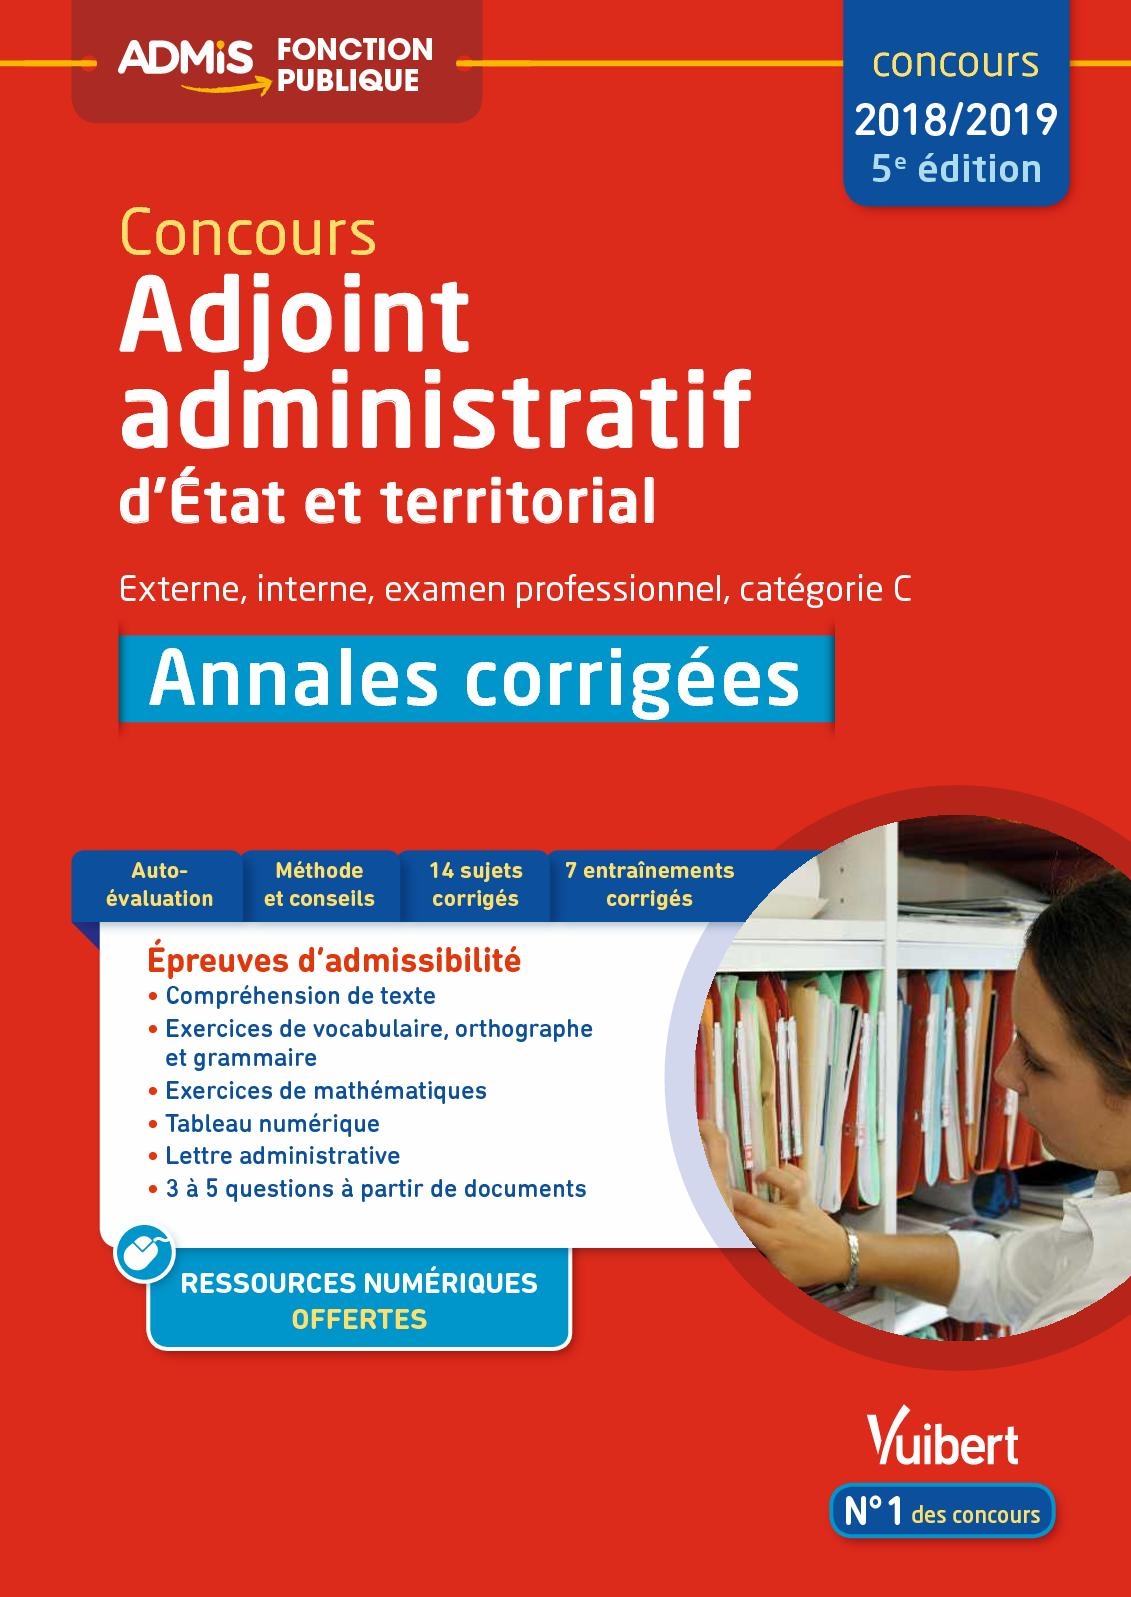 annales corrigees lettre administrative